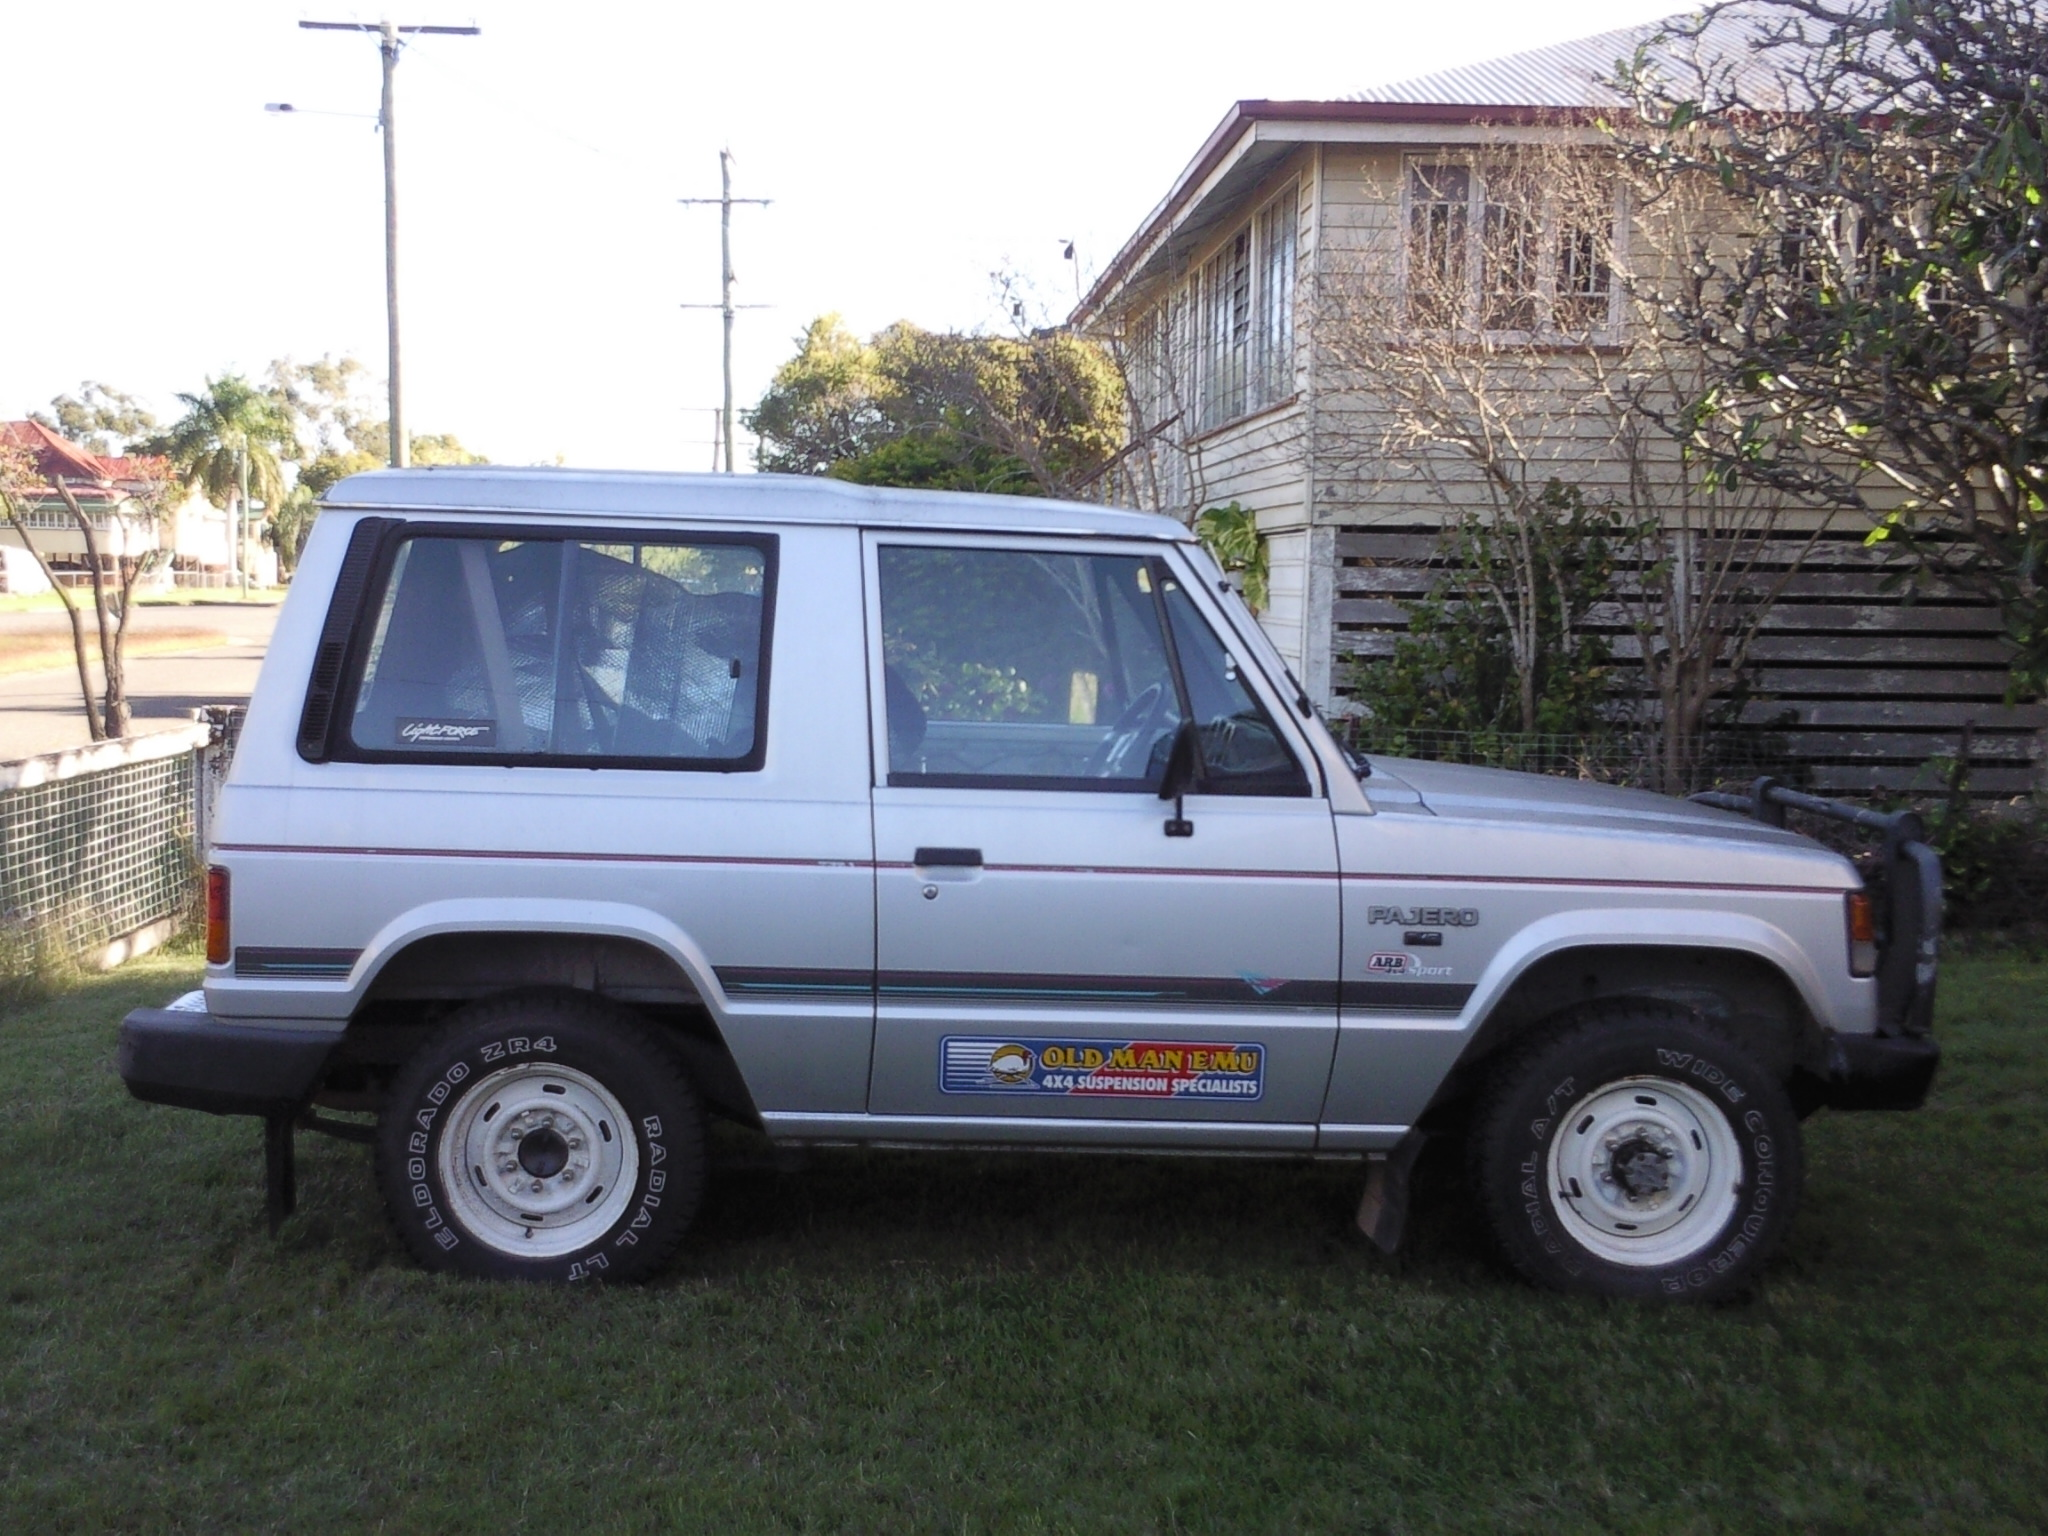 1989 mitsubishi pajero exe swb 4x4 nf boostcruising. Black Bedroom Furniture Sets. Home Design Ideas